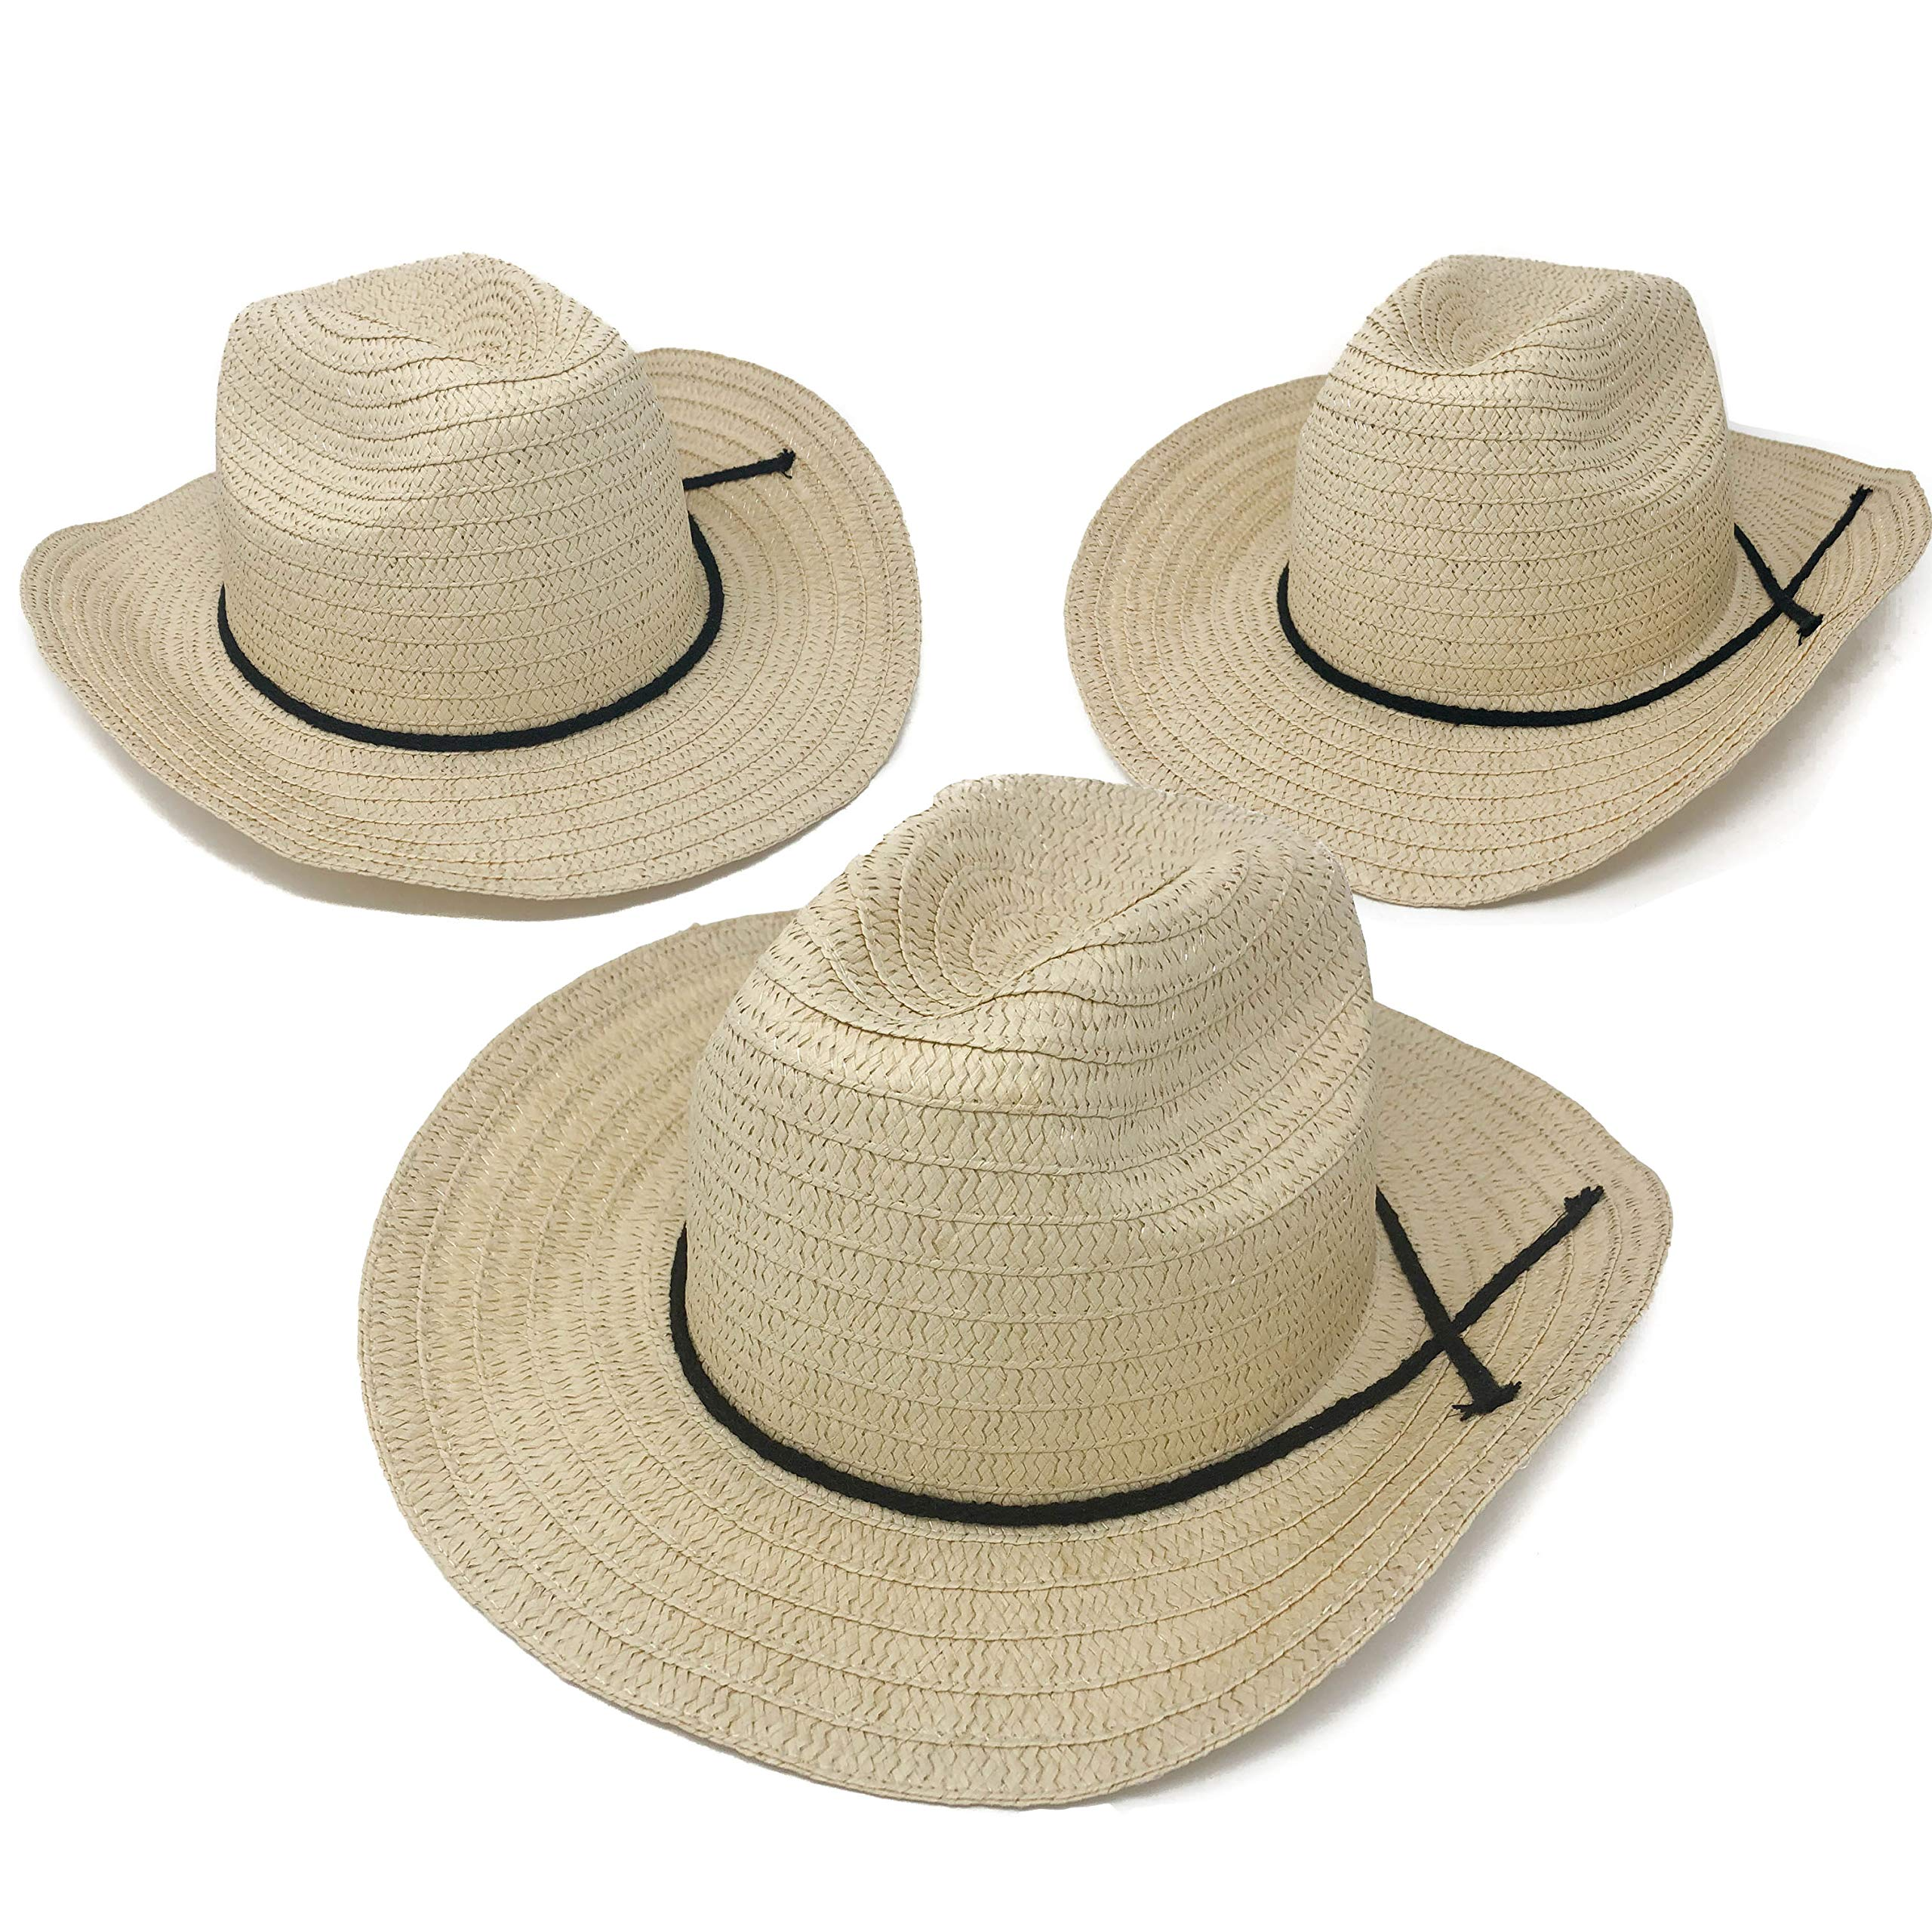 12 Piece Cowboy Hats - Adult Western Straw Hats with Band for Western Theme Party by Podzly